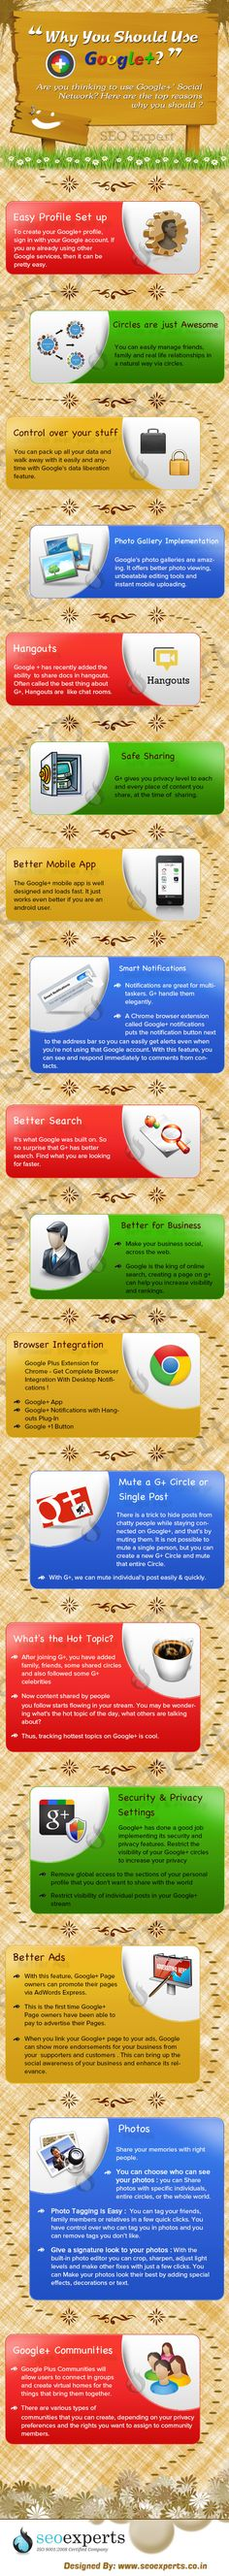 Why You Should Use #GooglePlus? #Infographic - ¿Porqué debes usar Google+? #Infografia